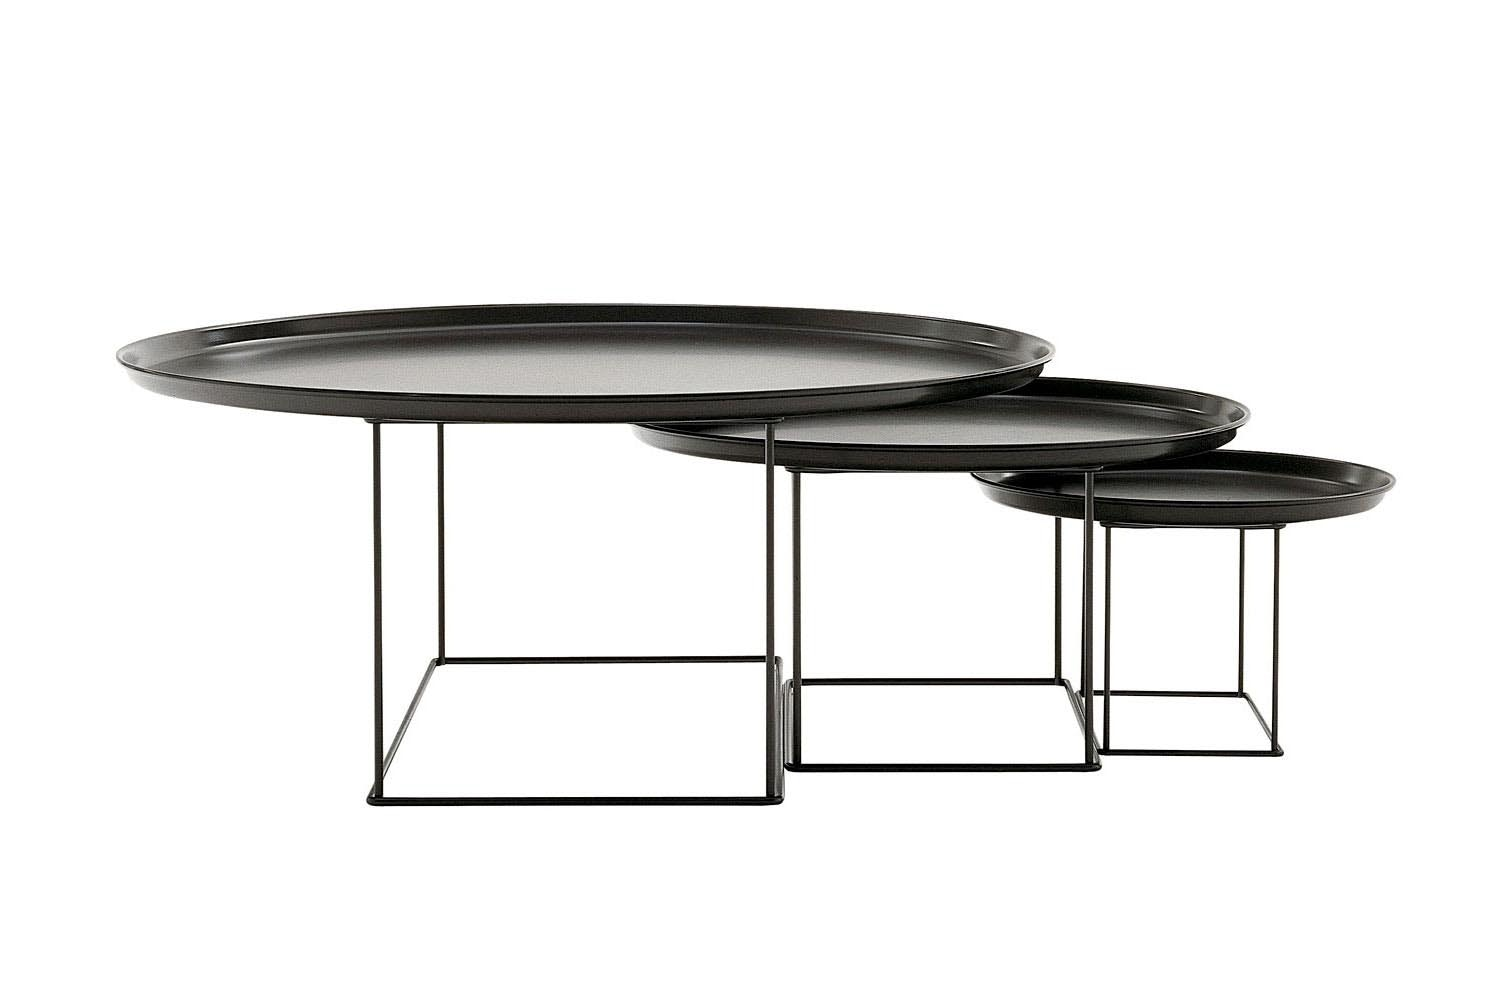 Fat-Fat Coffee Table by Patricia Urquiola for B&B Italia